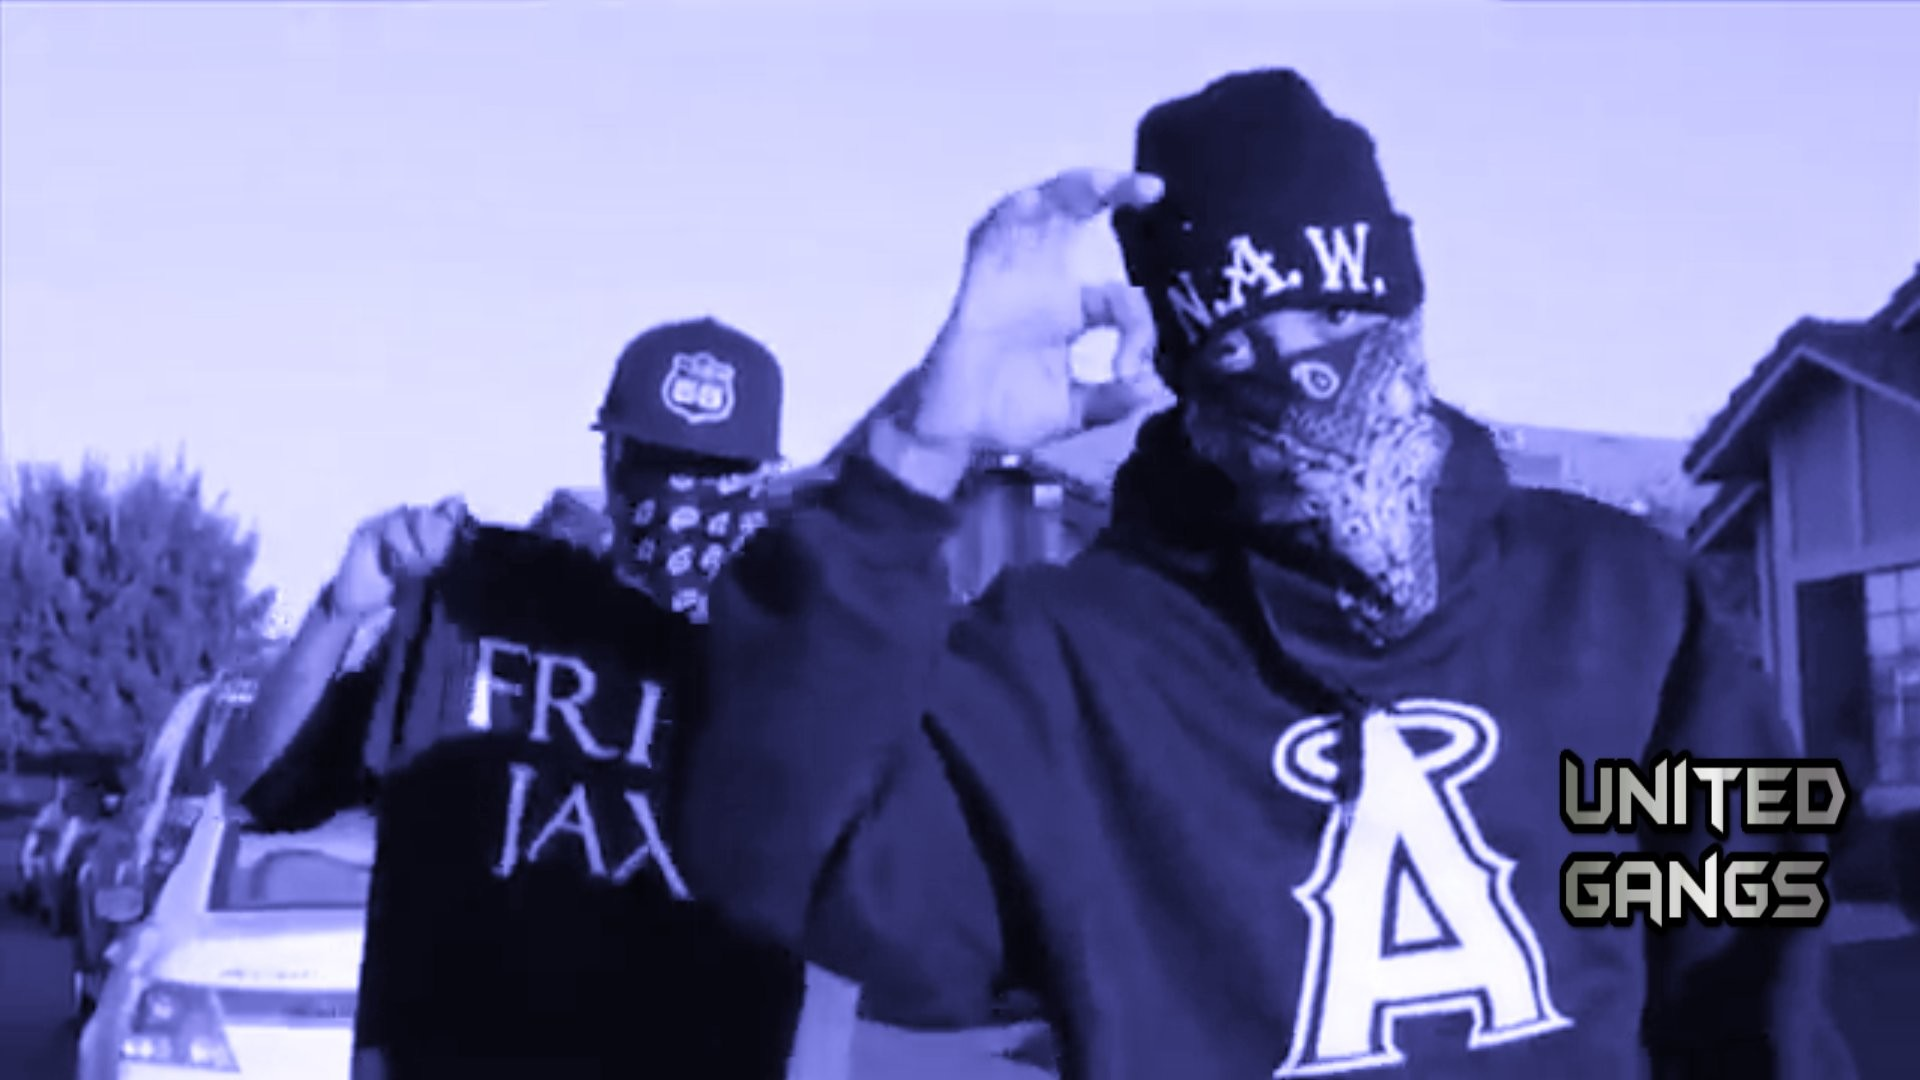 the crips Known rappers that are bloods: the game, gucci mane, yg, lil wayne (though it is not really confirmed), birdman, suge knight (not a rapper but a prominent figure in hip-hop who i guess should be acknowledged), dj quik, waka flocka flame, b-real of cypress hill, hi c, mack 10, sinister, top dogg, jay.